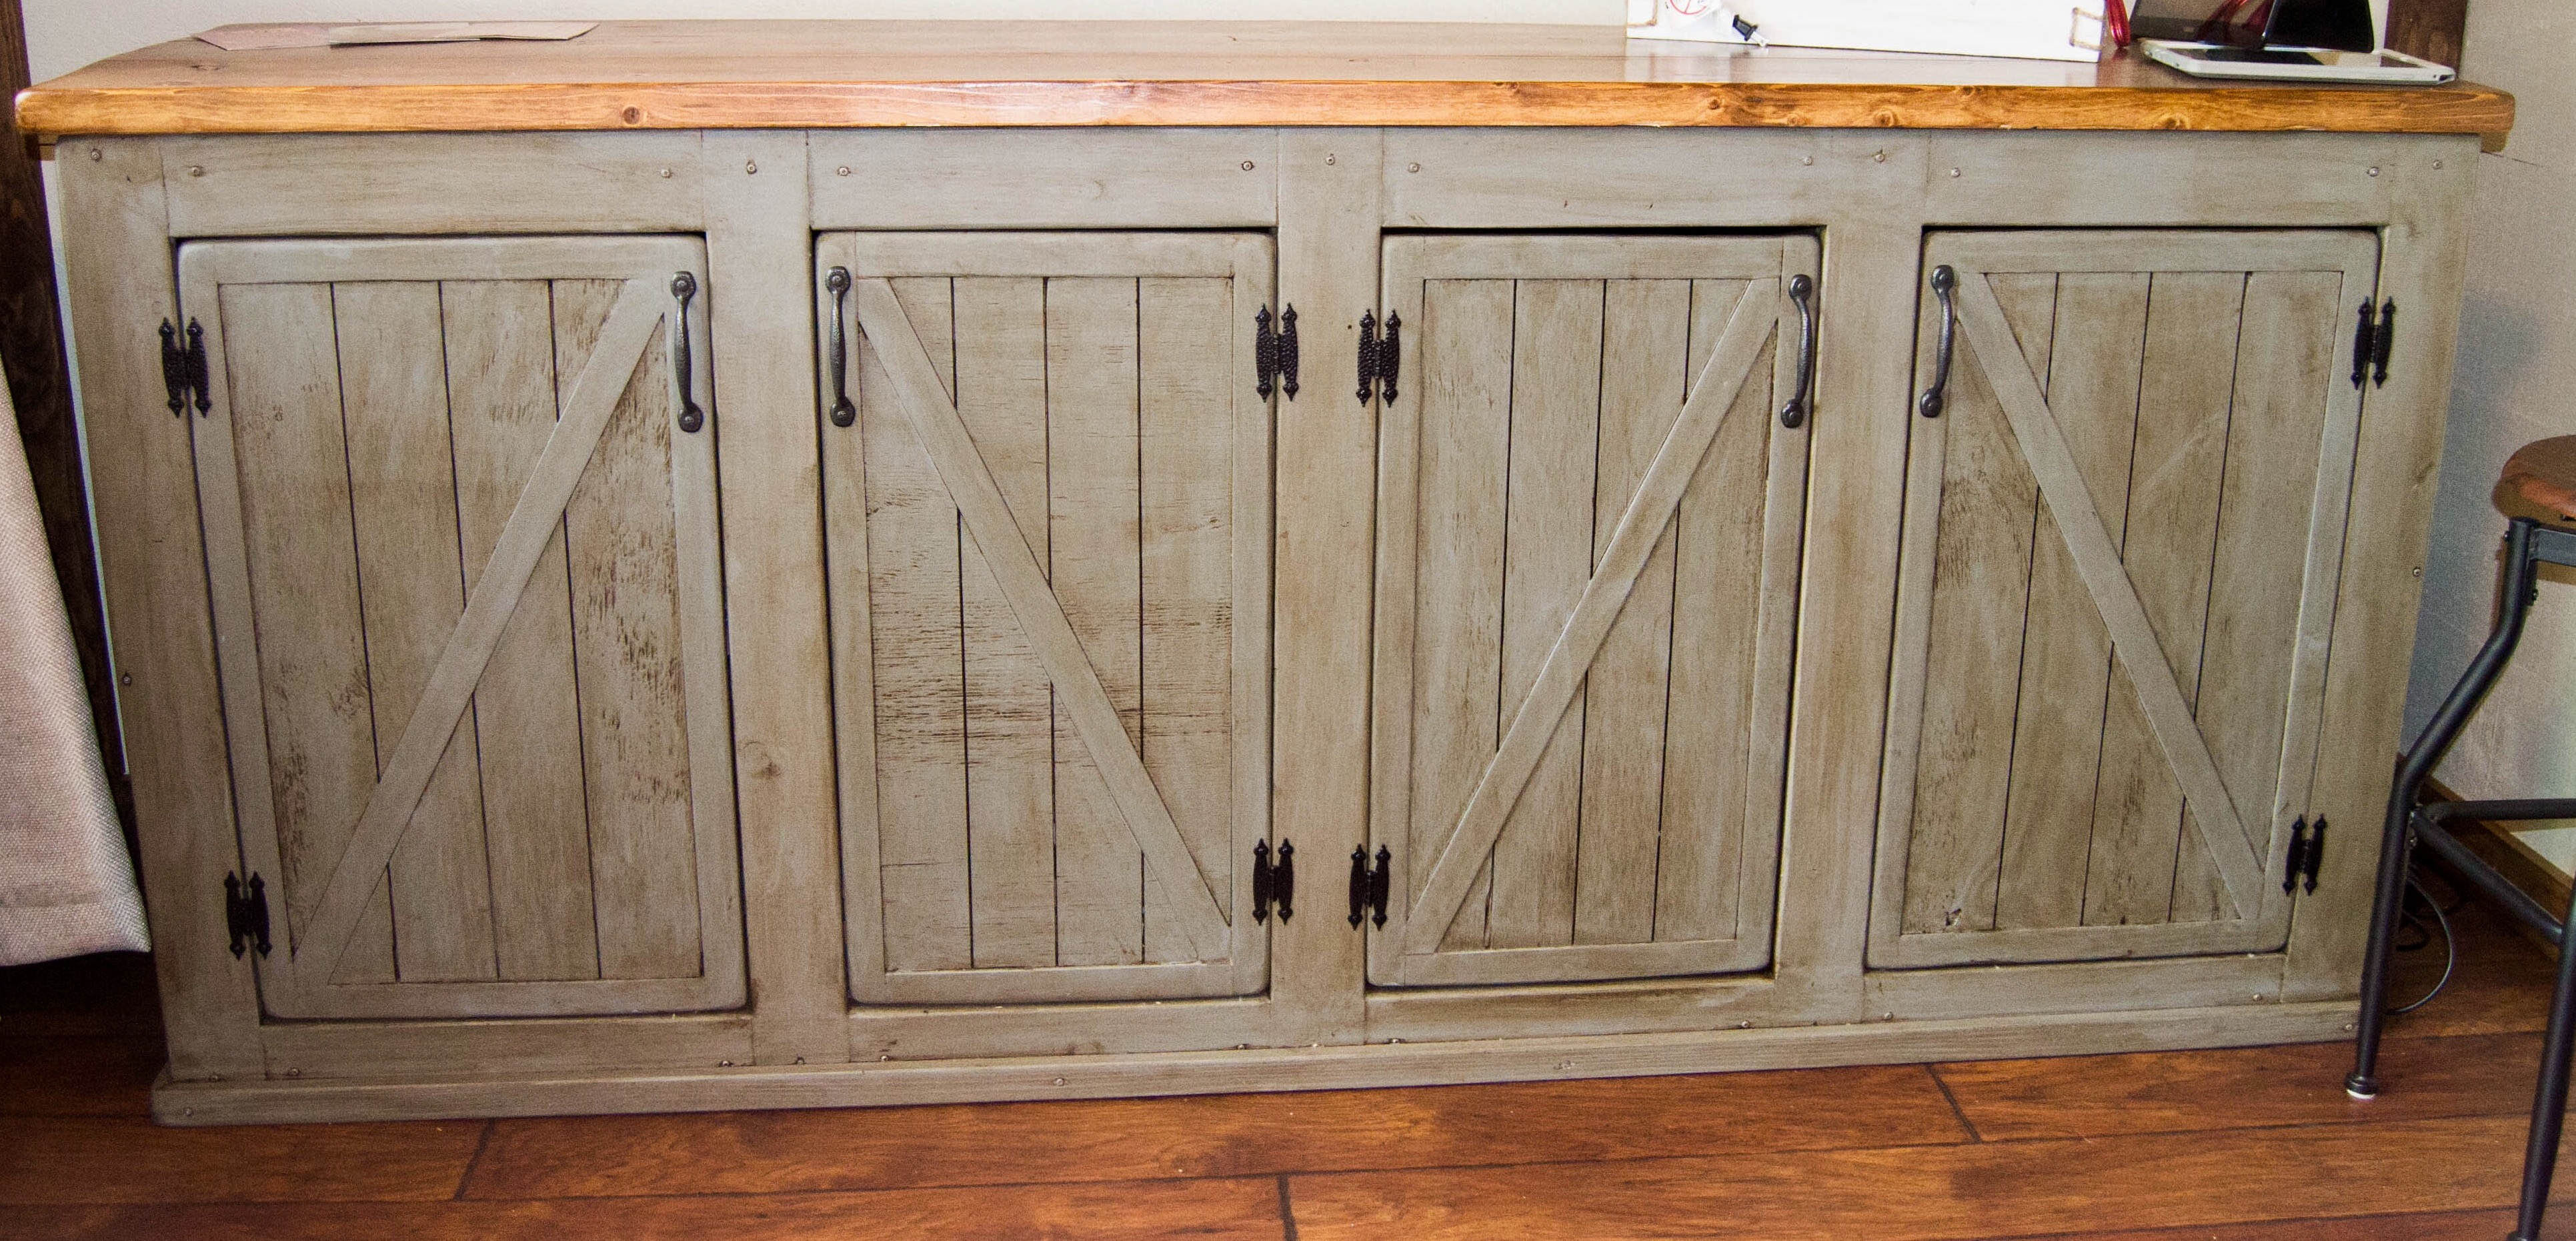 Make Kitchen Cabinet Doors Ana White Scrapped The Sliding Barn Doors Rustic